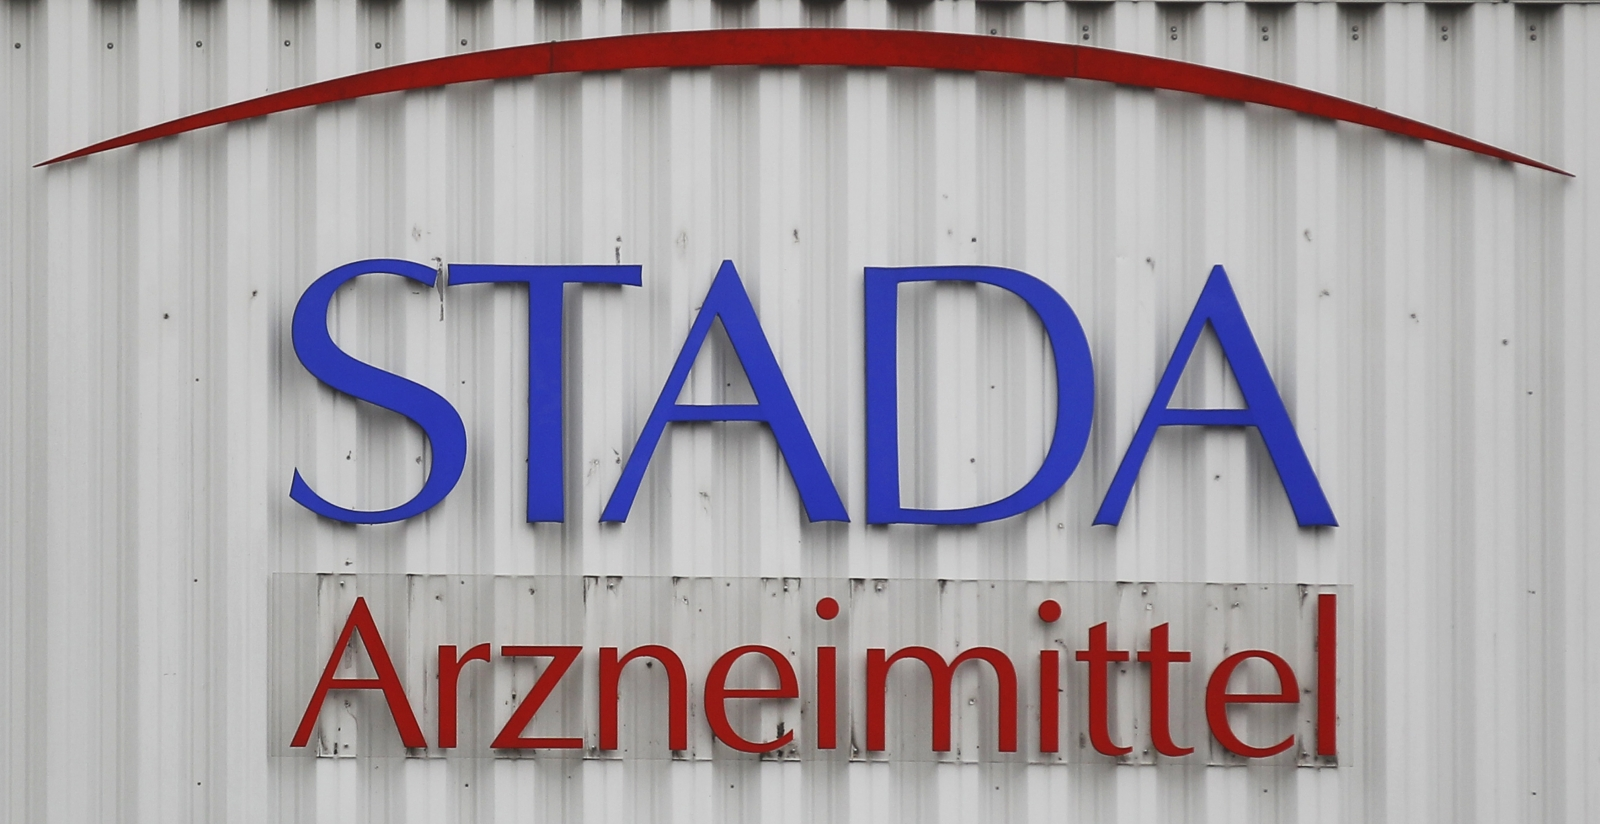 London-based Cinven offers €3.6bn to takeover STADA Arzneimittel